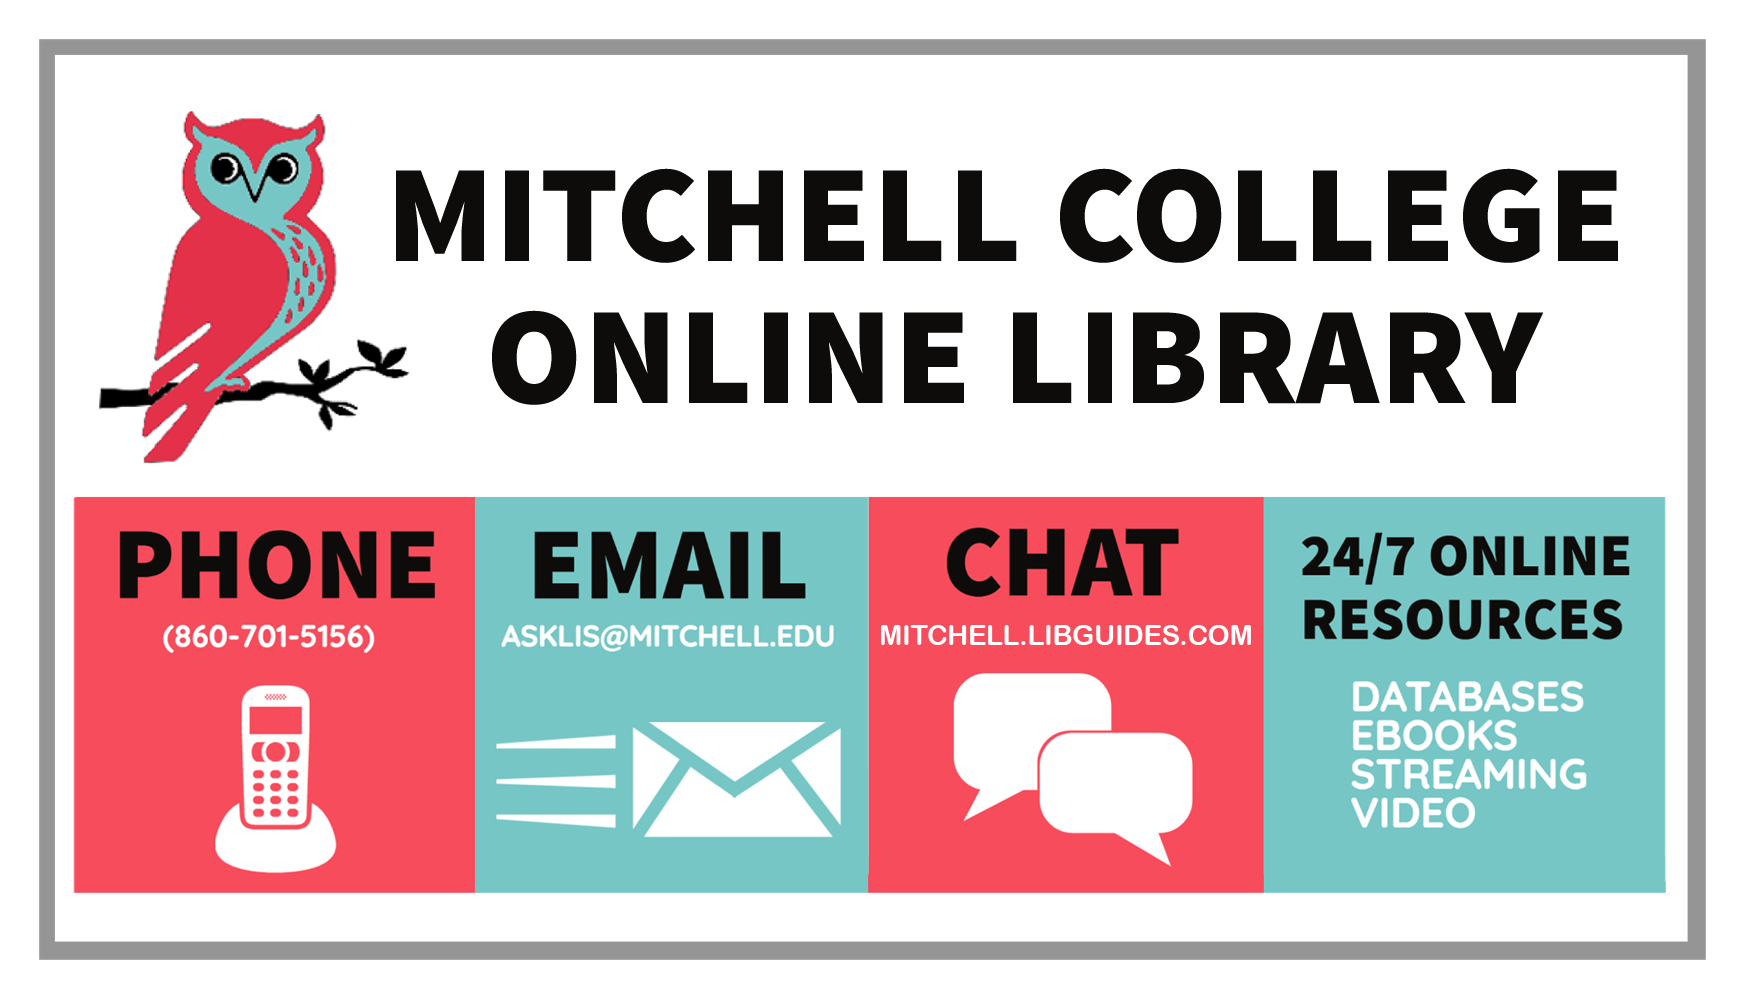 Library contacts: email us at asklis@mitchell.edu, call us at 860-701-5156, or chat with us on the library's website